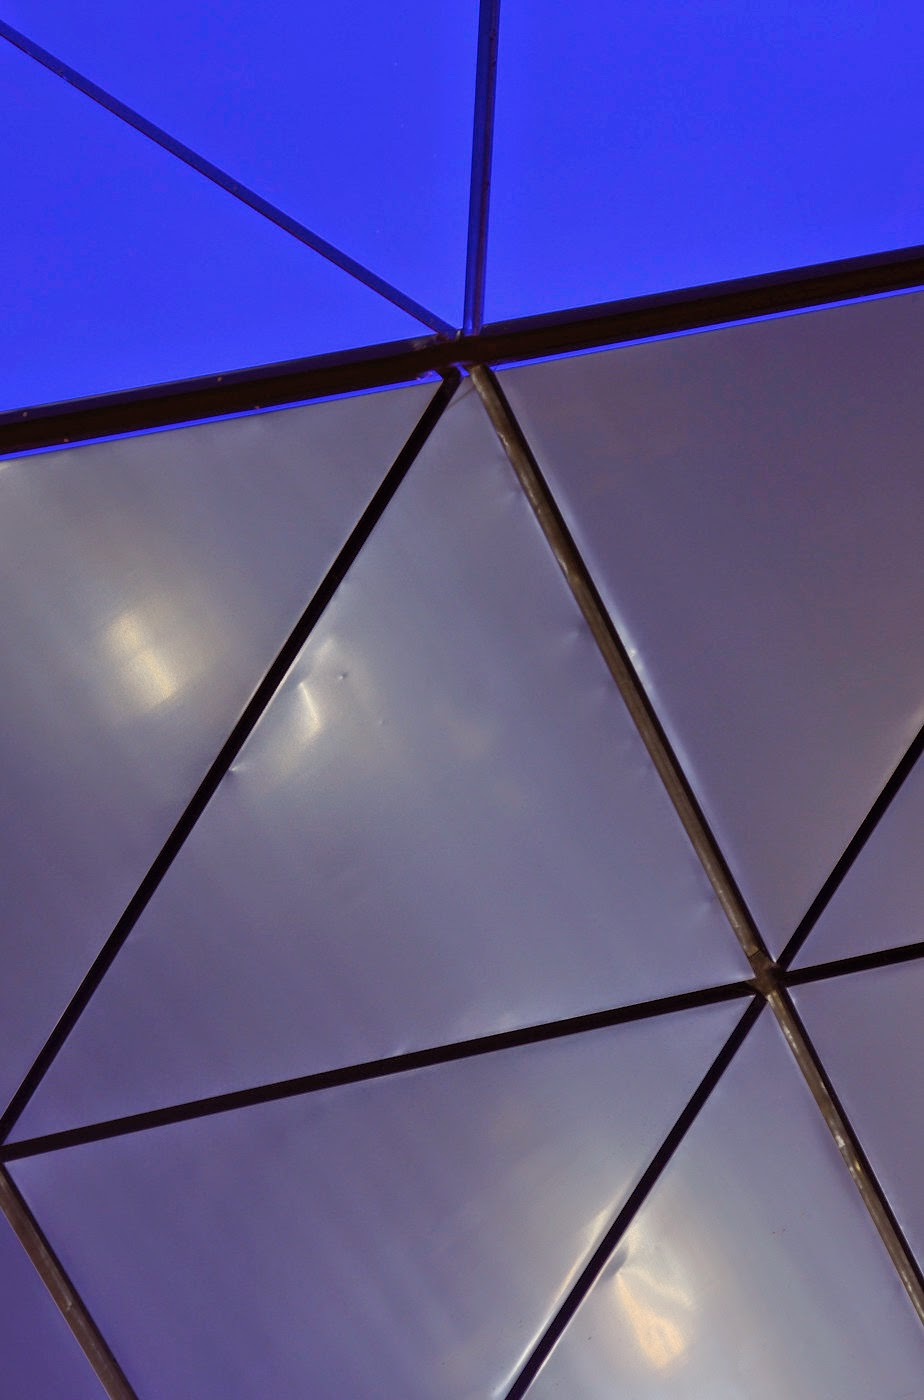 iconic, ARM, ARM Architecture, Cameron Chisholm Nicol, Perth arena, western Australia, tim Macauley, the light monkey collective, postmodern, postmodernist, façade, abstract, abstraction, detail, graphical, stunning, amazing, new, modern, architecture, architectural, moody, fine art, photographic art, Australian, Perth